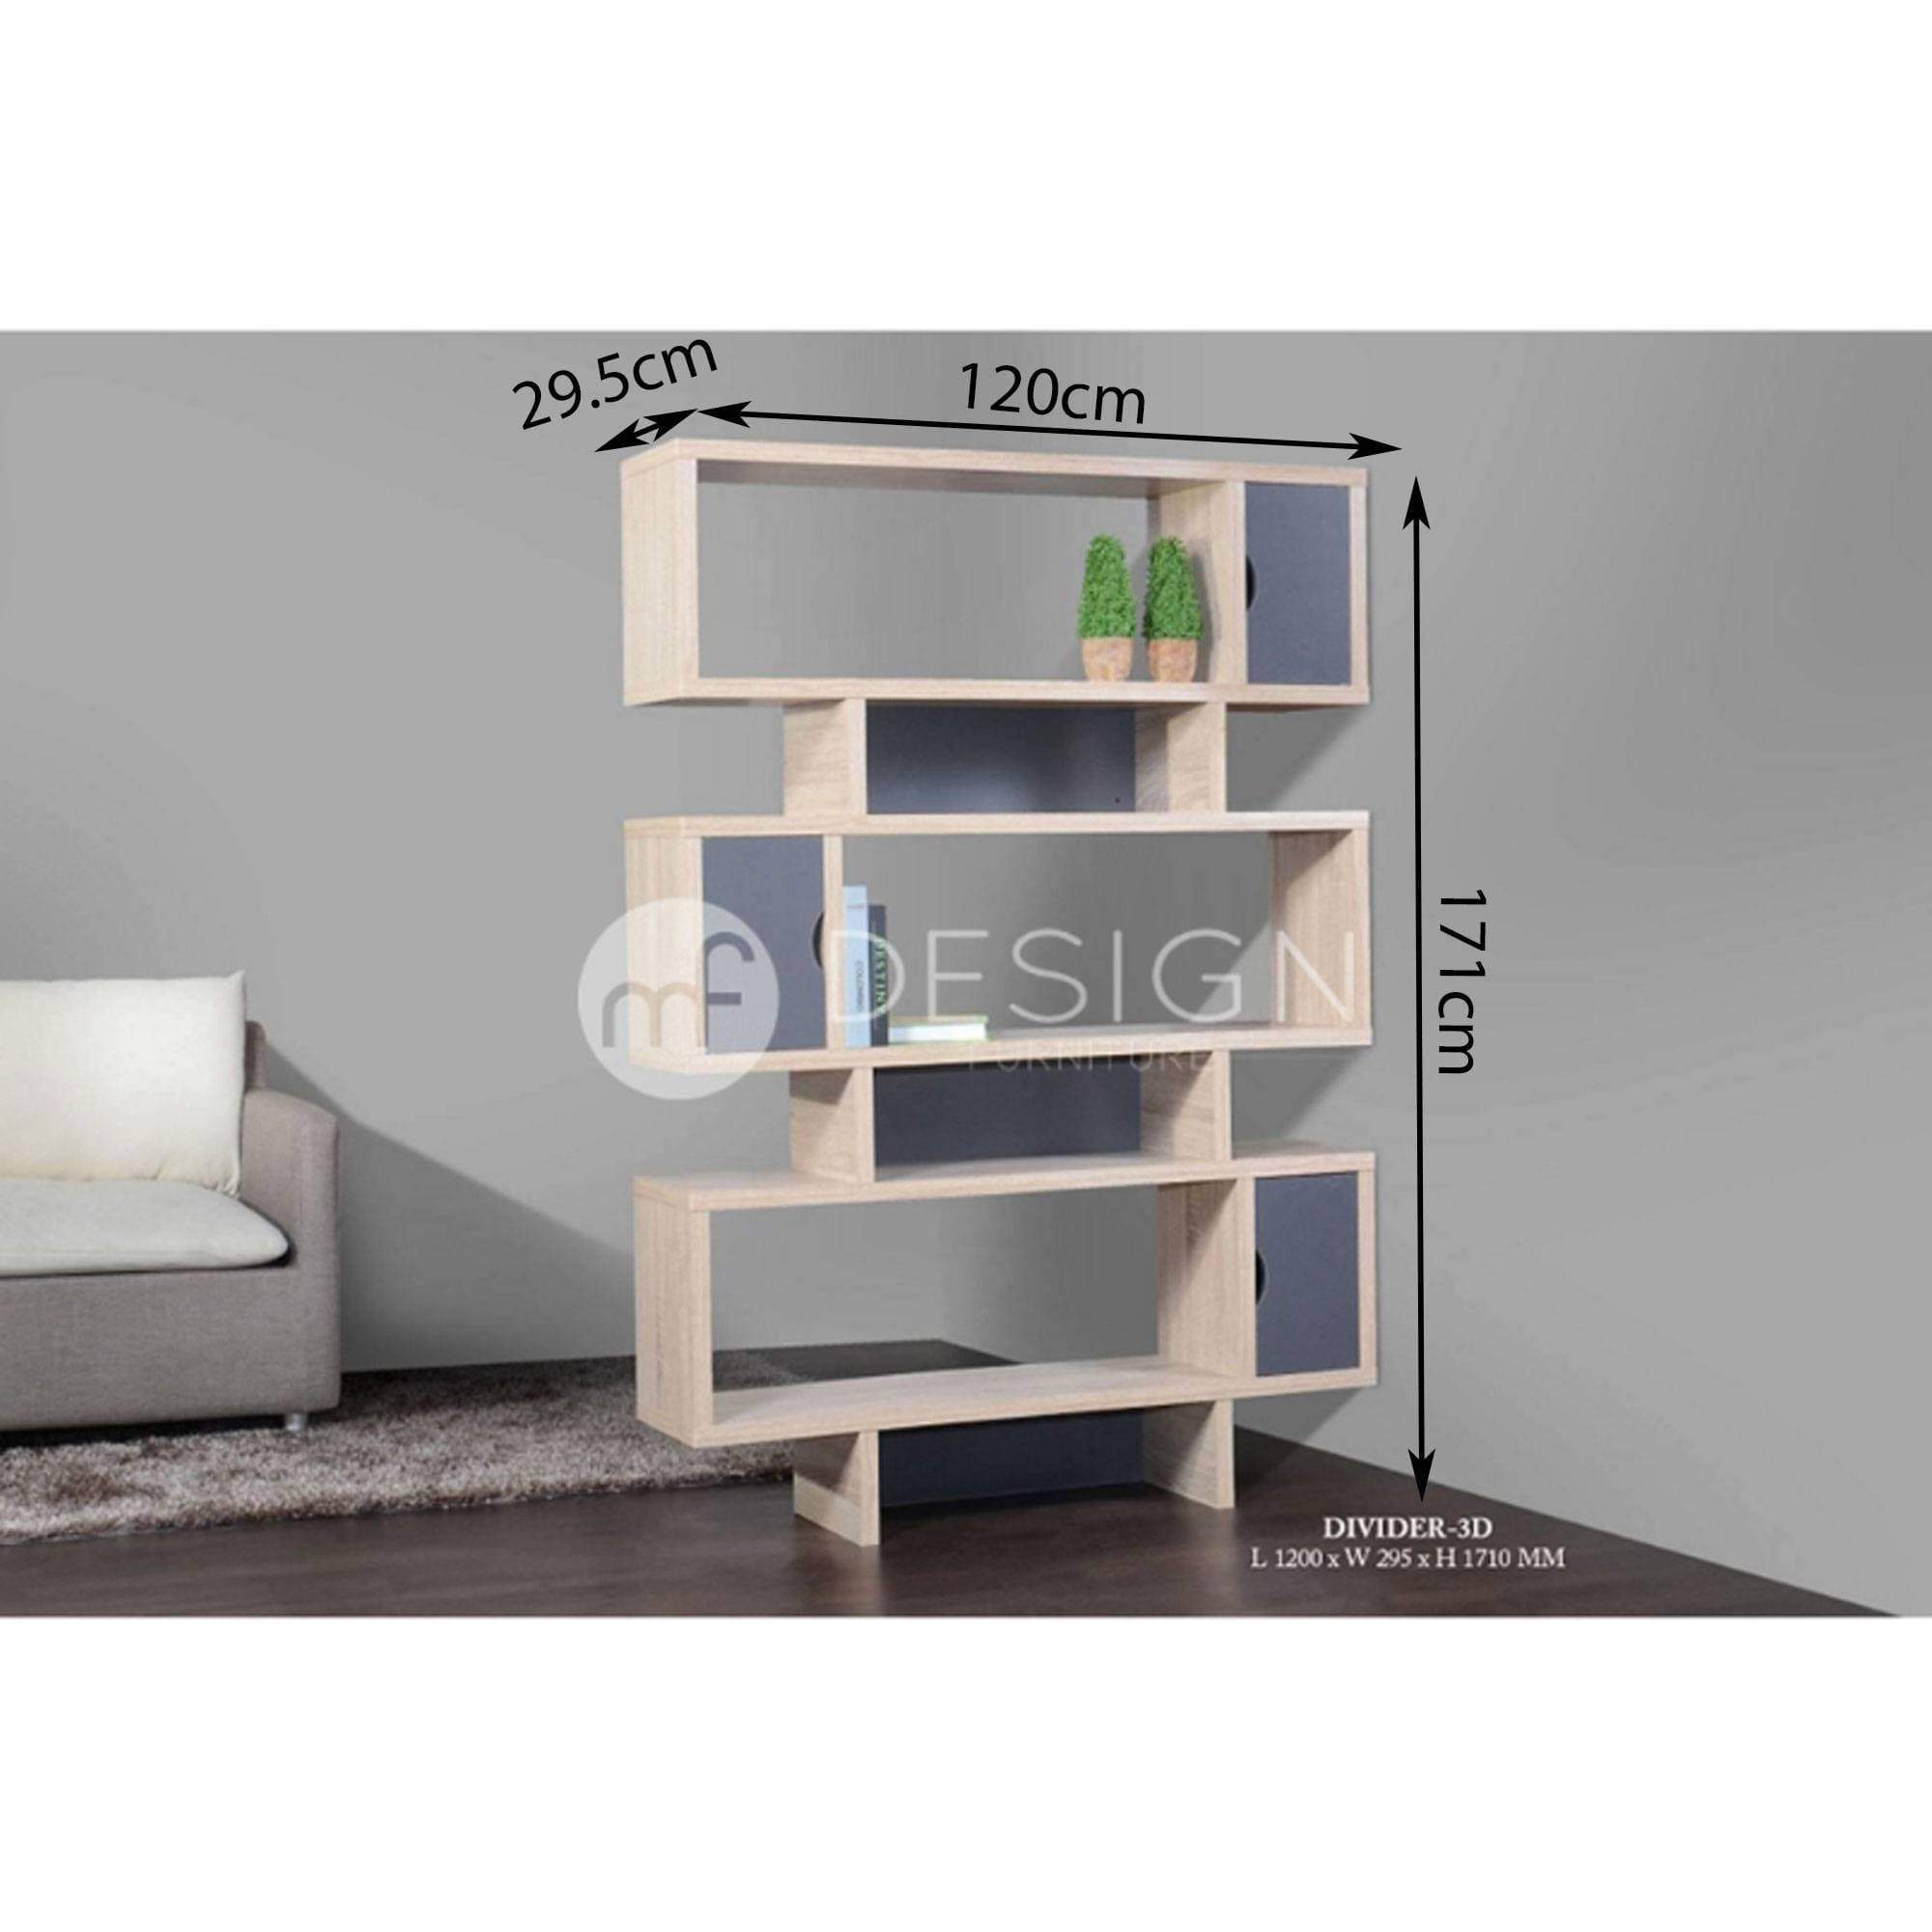 24 FILLO 4 GREY DRAWER SHELF DIVIDER